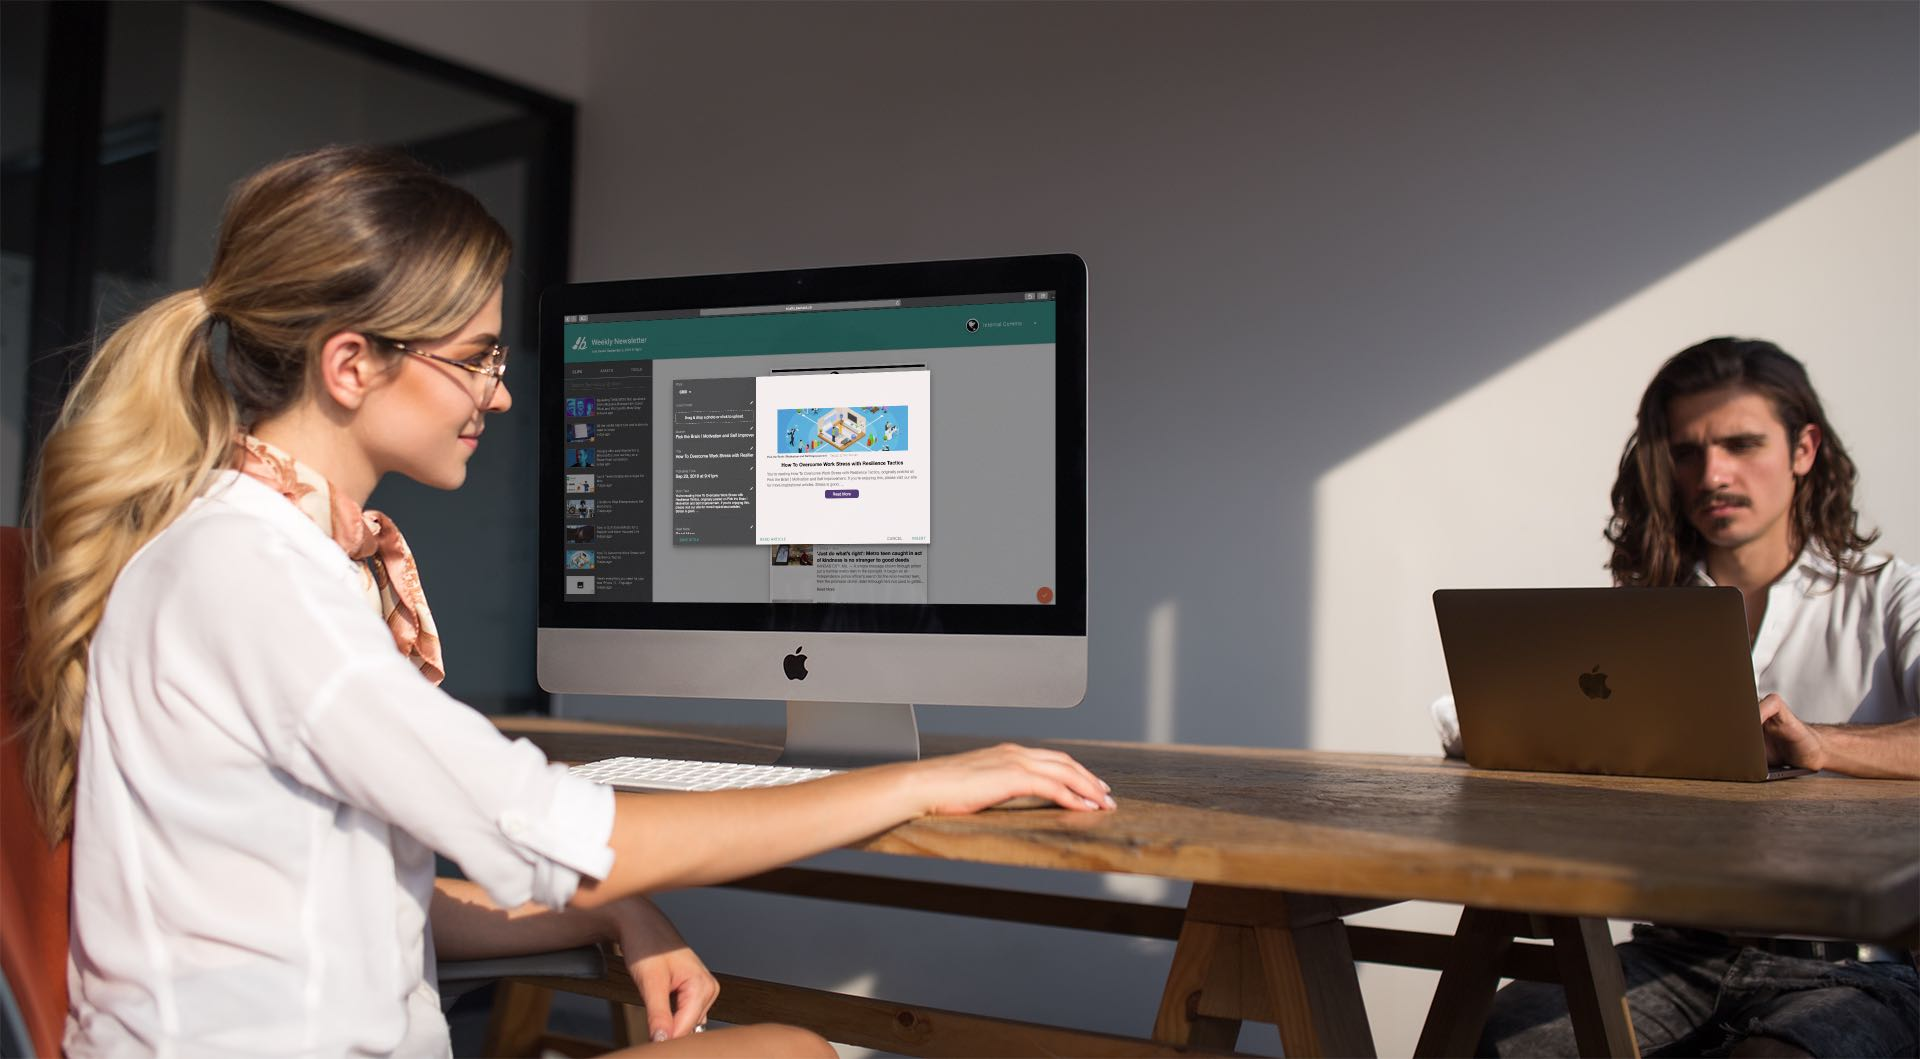 girl-working-with-an-imac-mockup-near-her-coworker-a20982